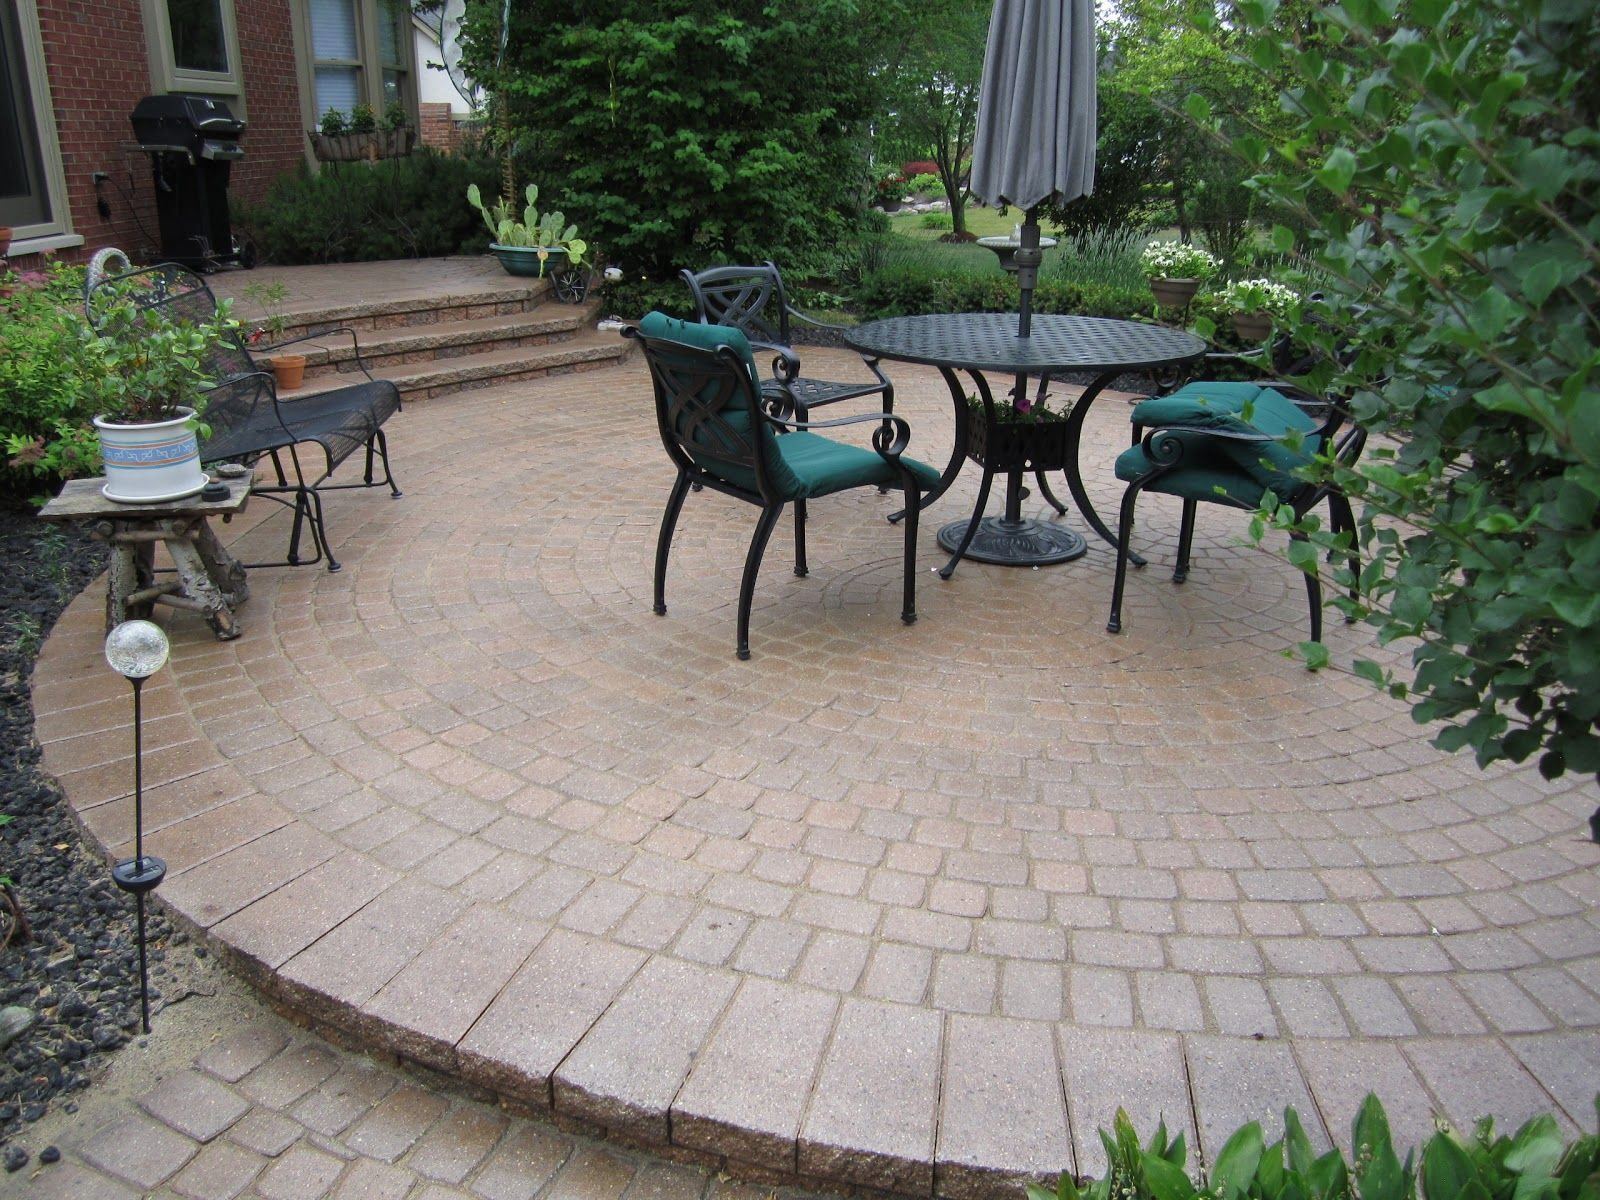 Elevated Circular Paver Patio Area With Seating Paving